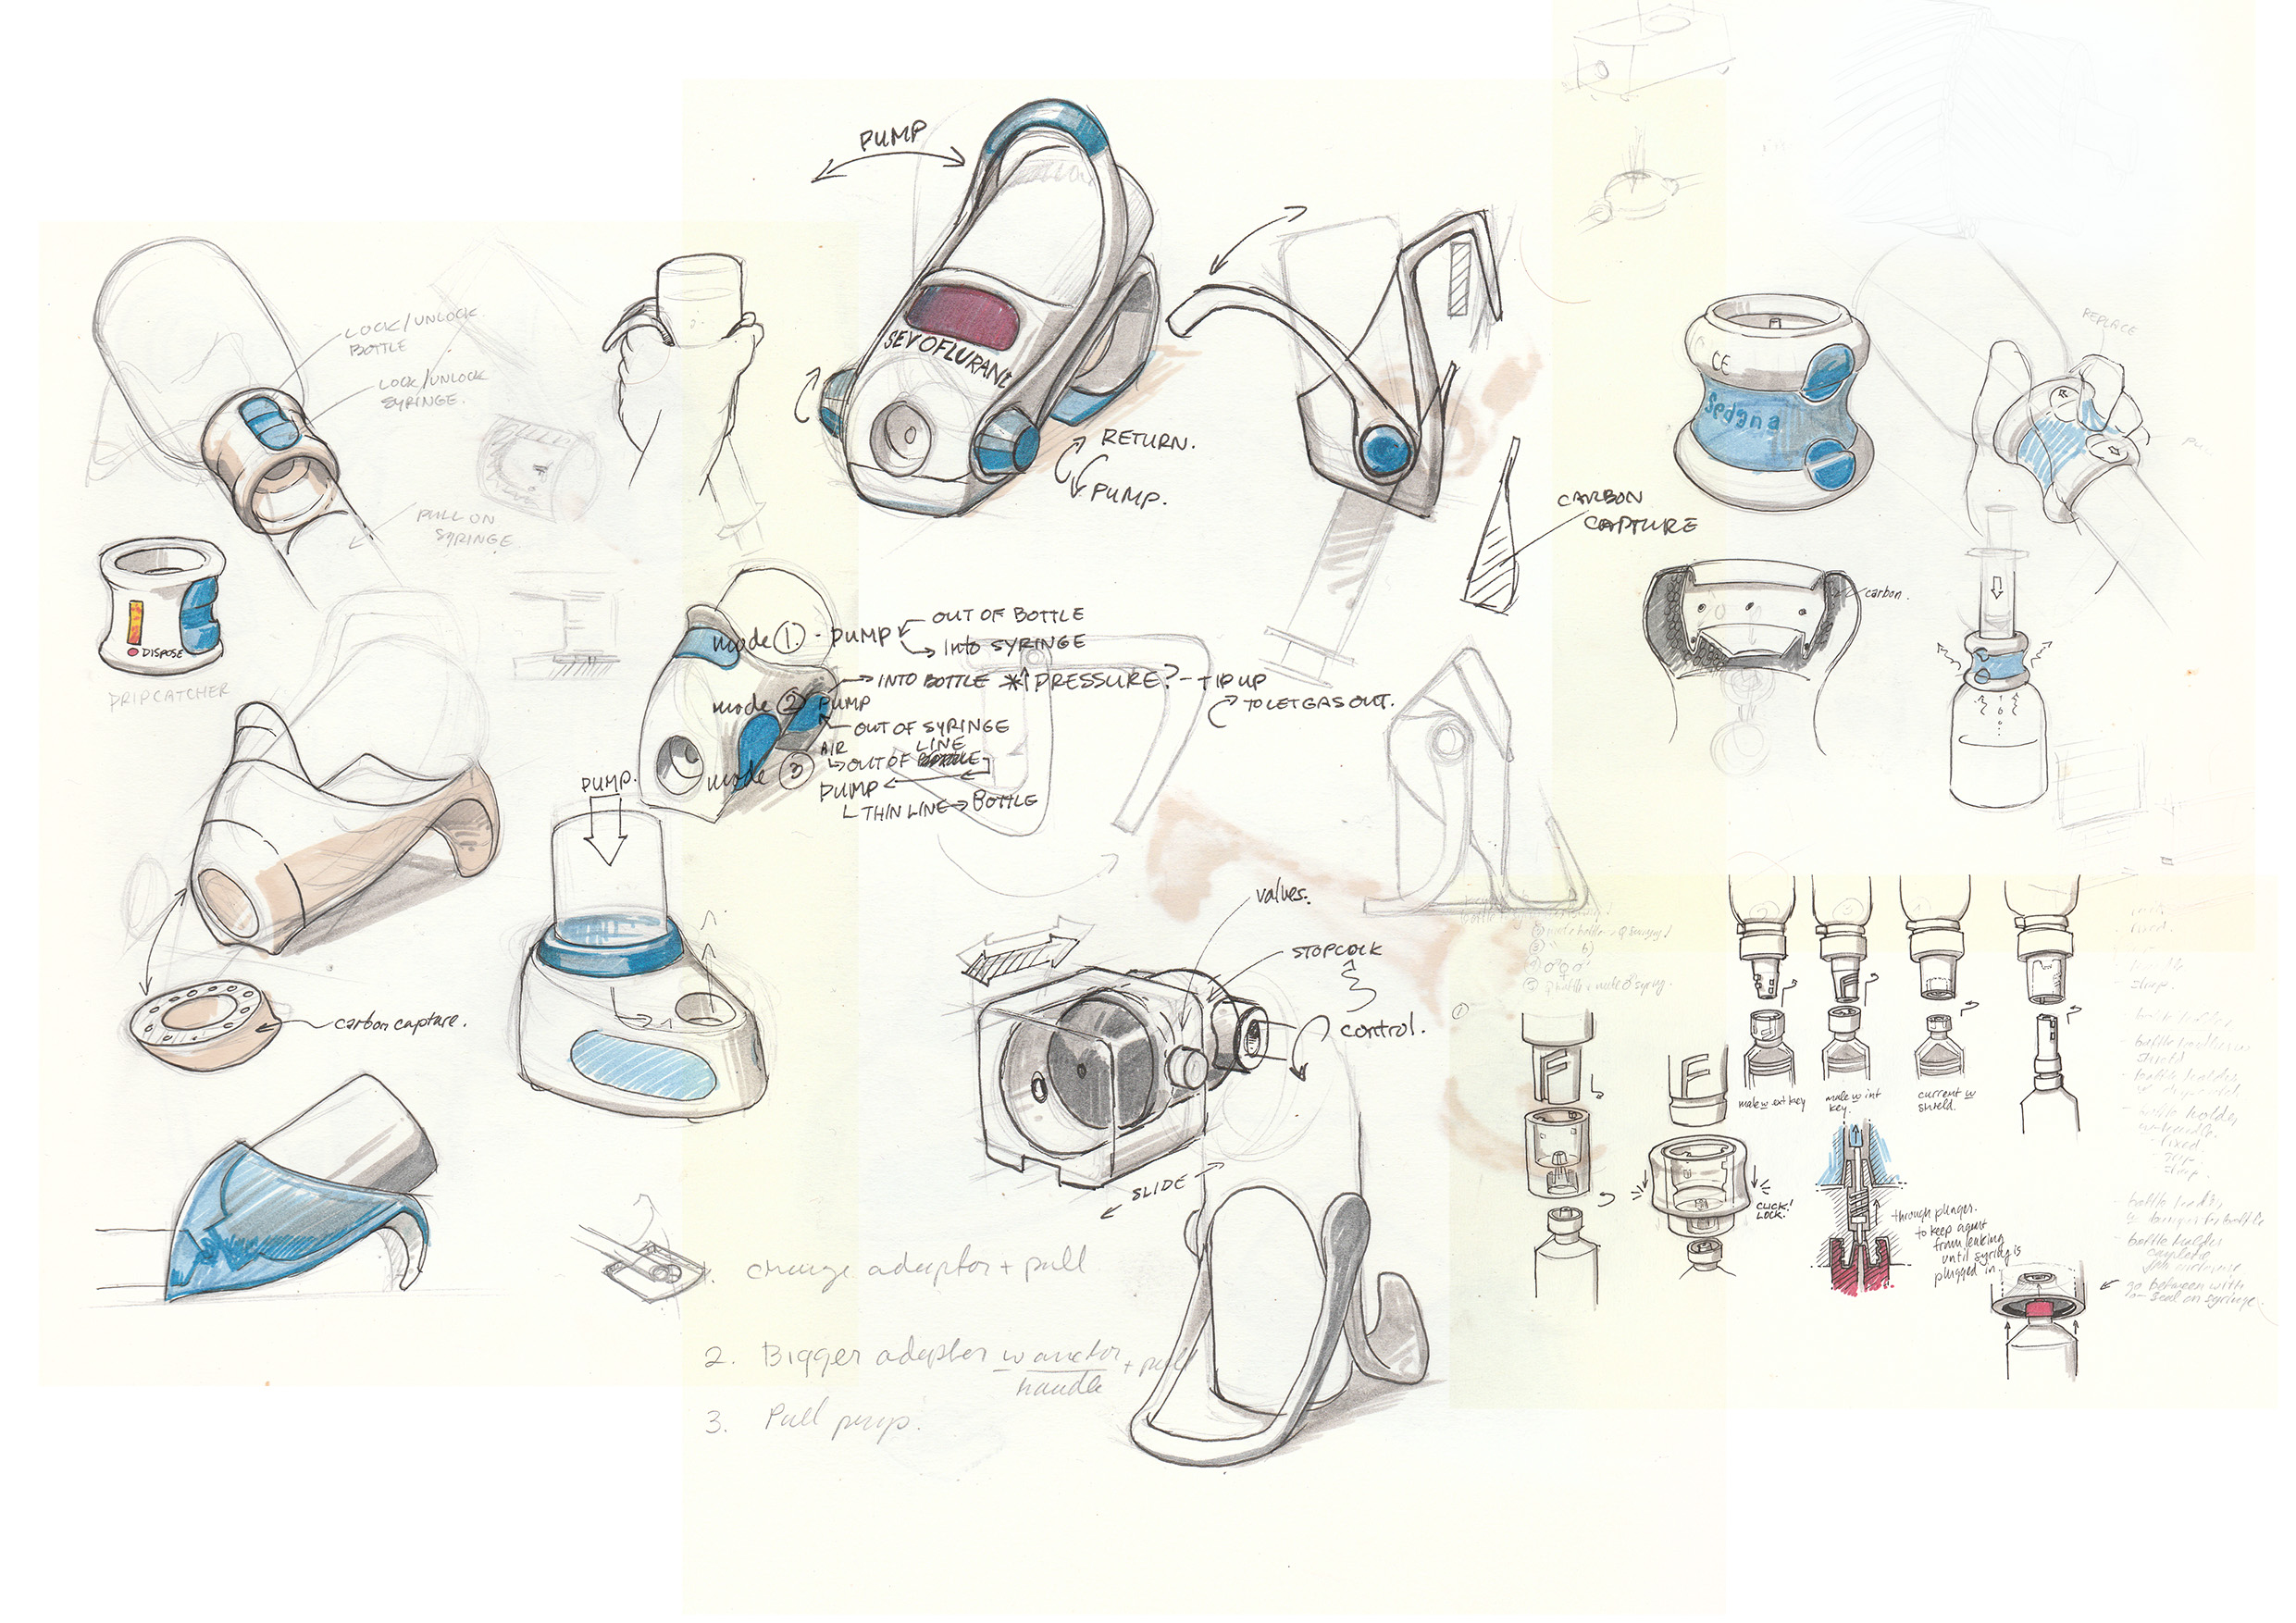 Concept sketches for an anaesthetic filling device I've been working on. This image is actually a composite of several sketches done while working on my M.Sc Medical Device Design thesis project. The company I worked for liked these sketches so much, they blew them up and framed them for their R&D office.